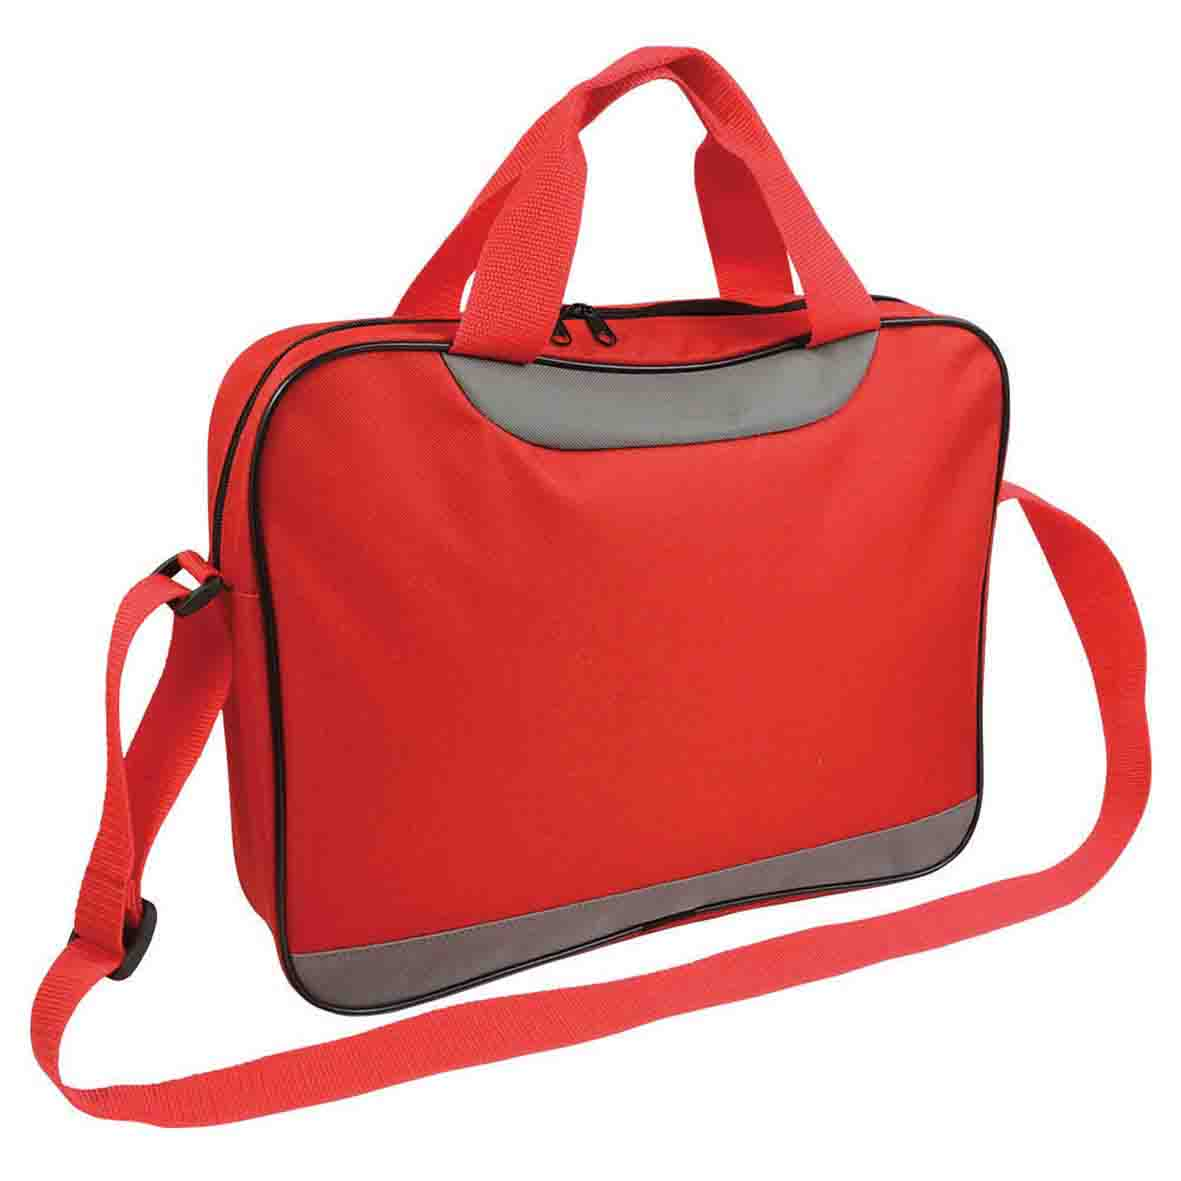 Document bag with zipper - Red sip-1514038